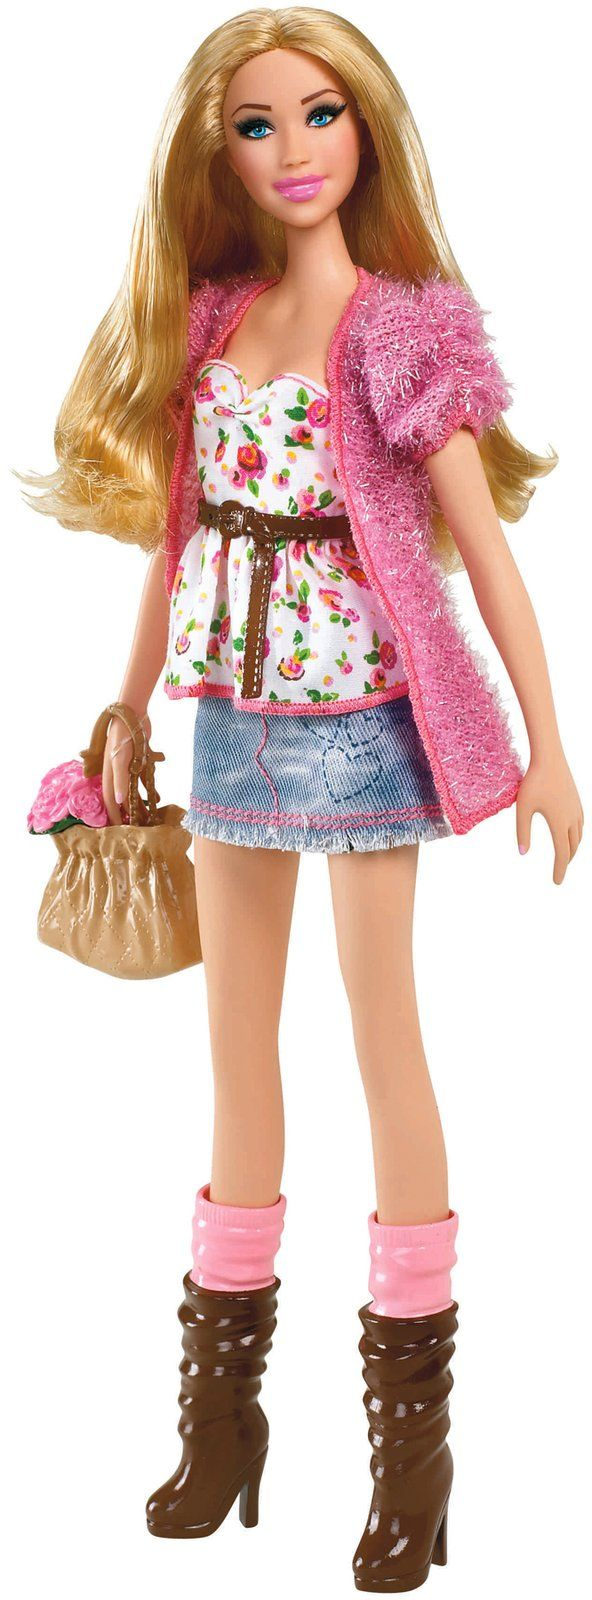 Barbie Barbie Fashion Stardoll Doll - Mix and Match Trendy Original  Fashions and Accessories imported goods